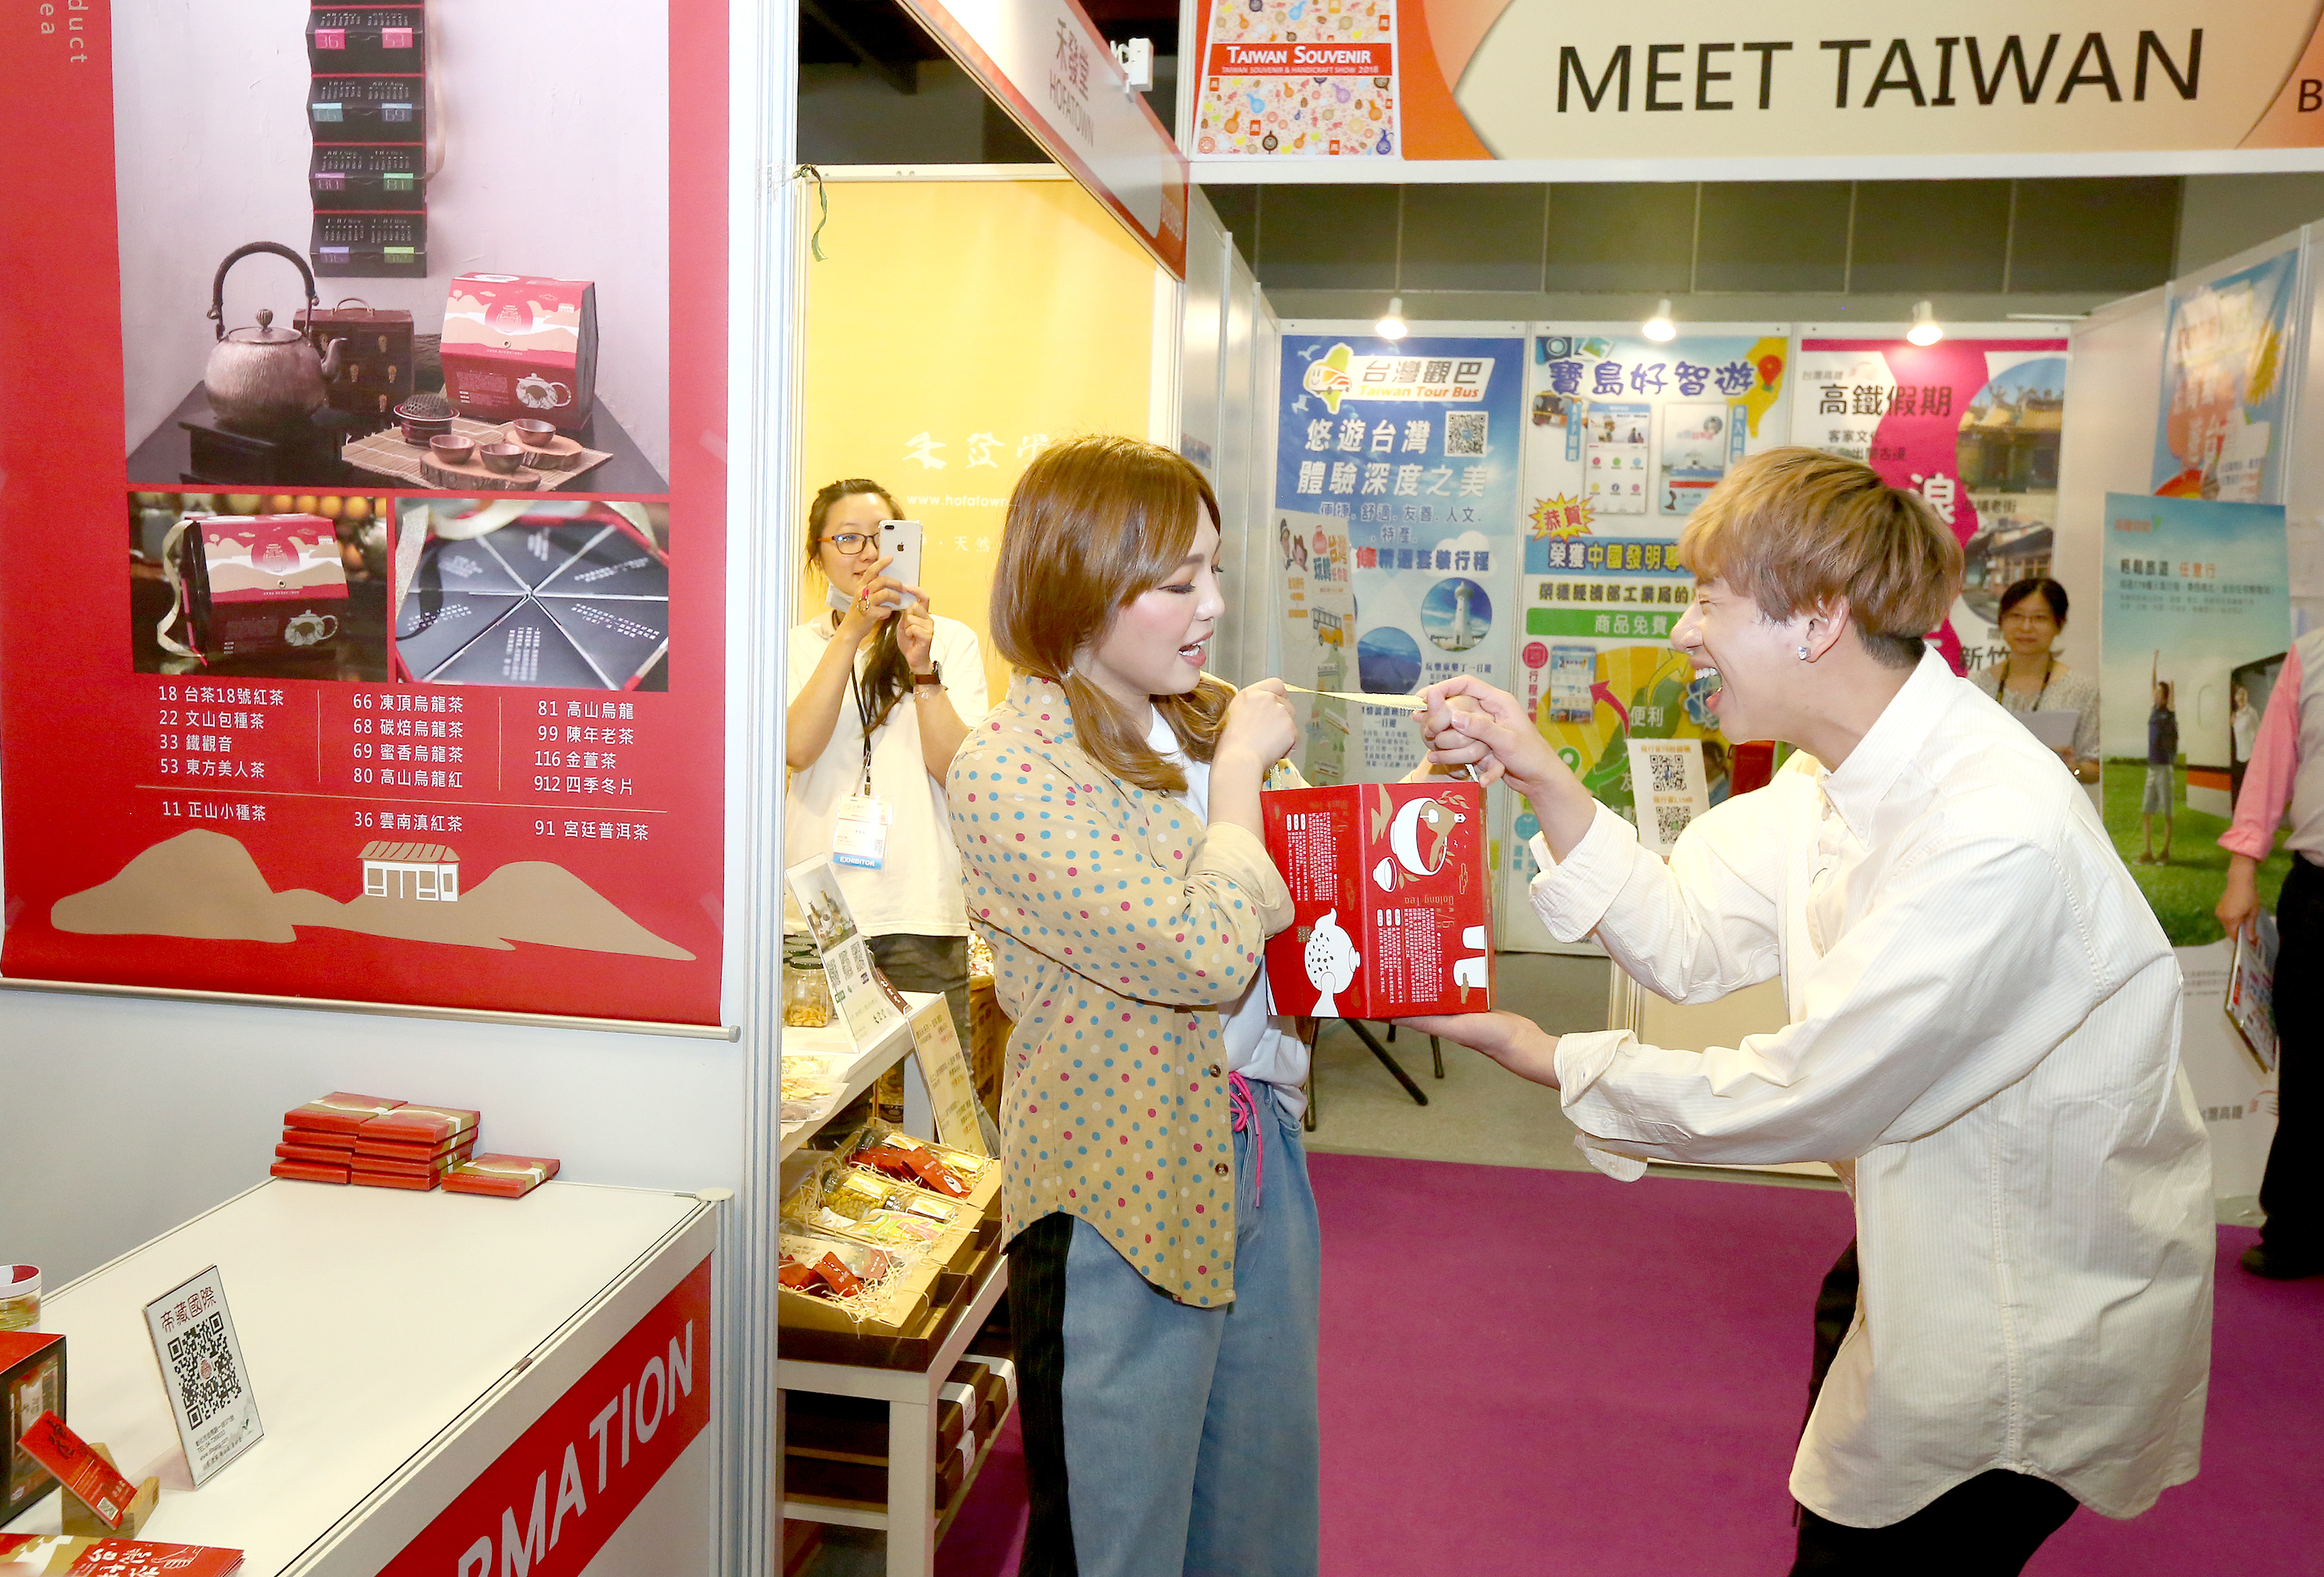 https://storage.googleapis.com/www.taiwantradeshow.com.tw/activity-photo/202011/T-69421962-name.jpg